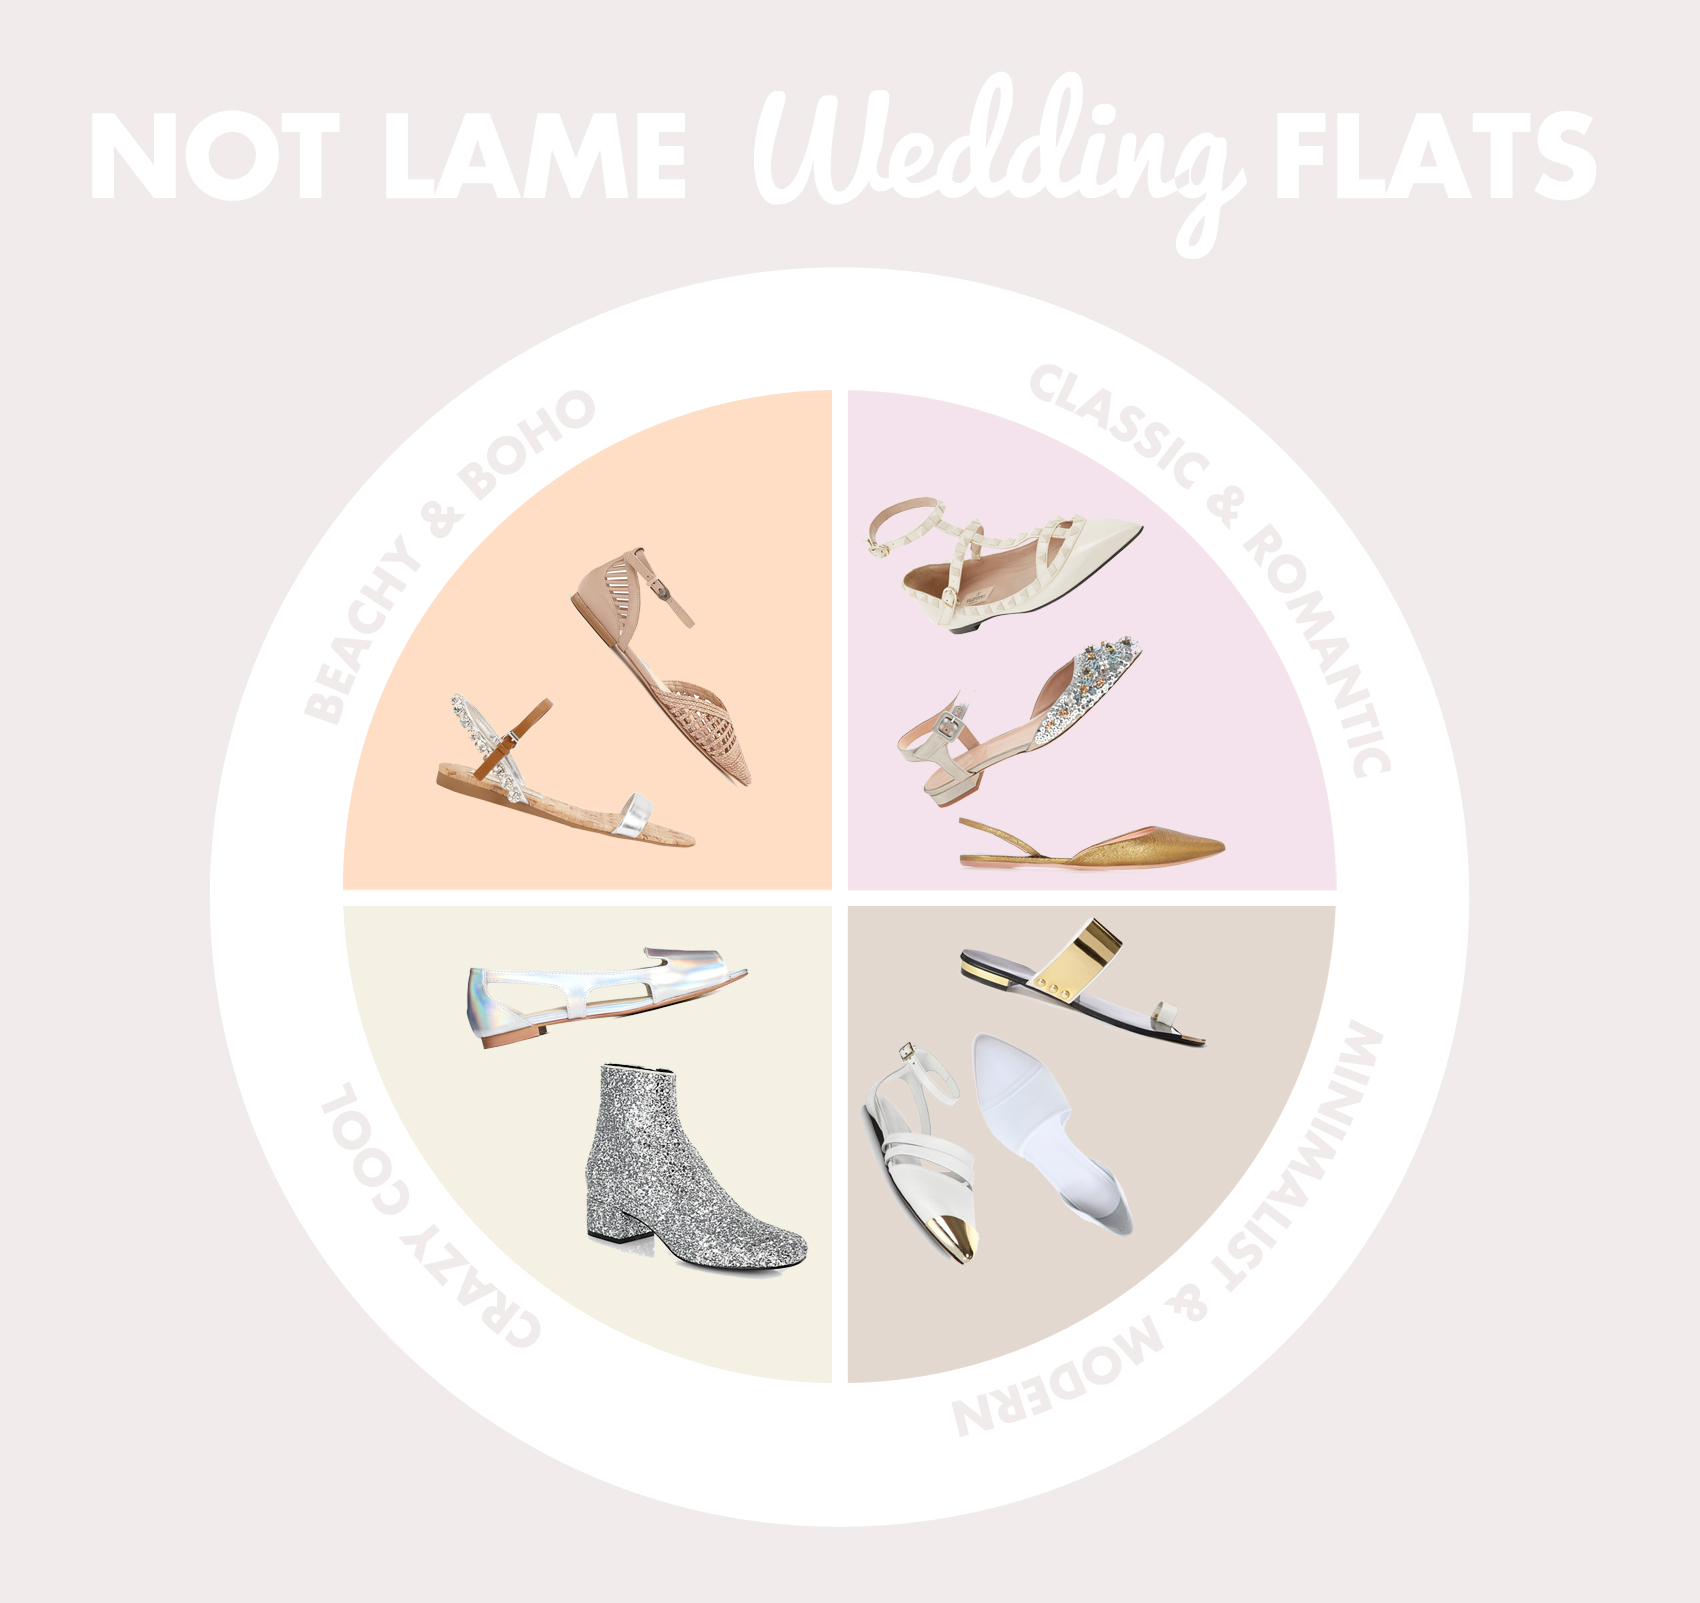 WEDDING FLATS // The Kitchy Kitchen